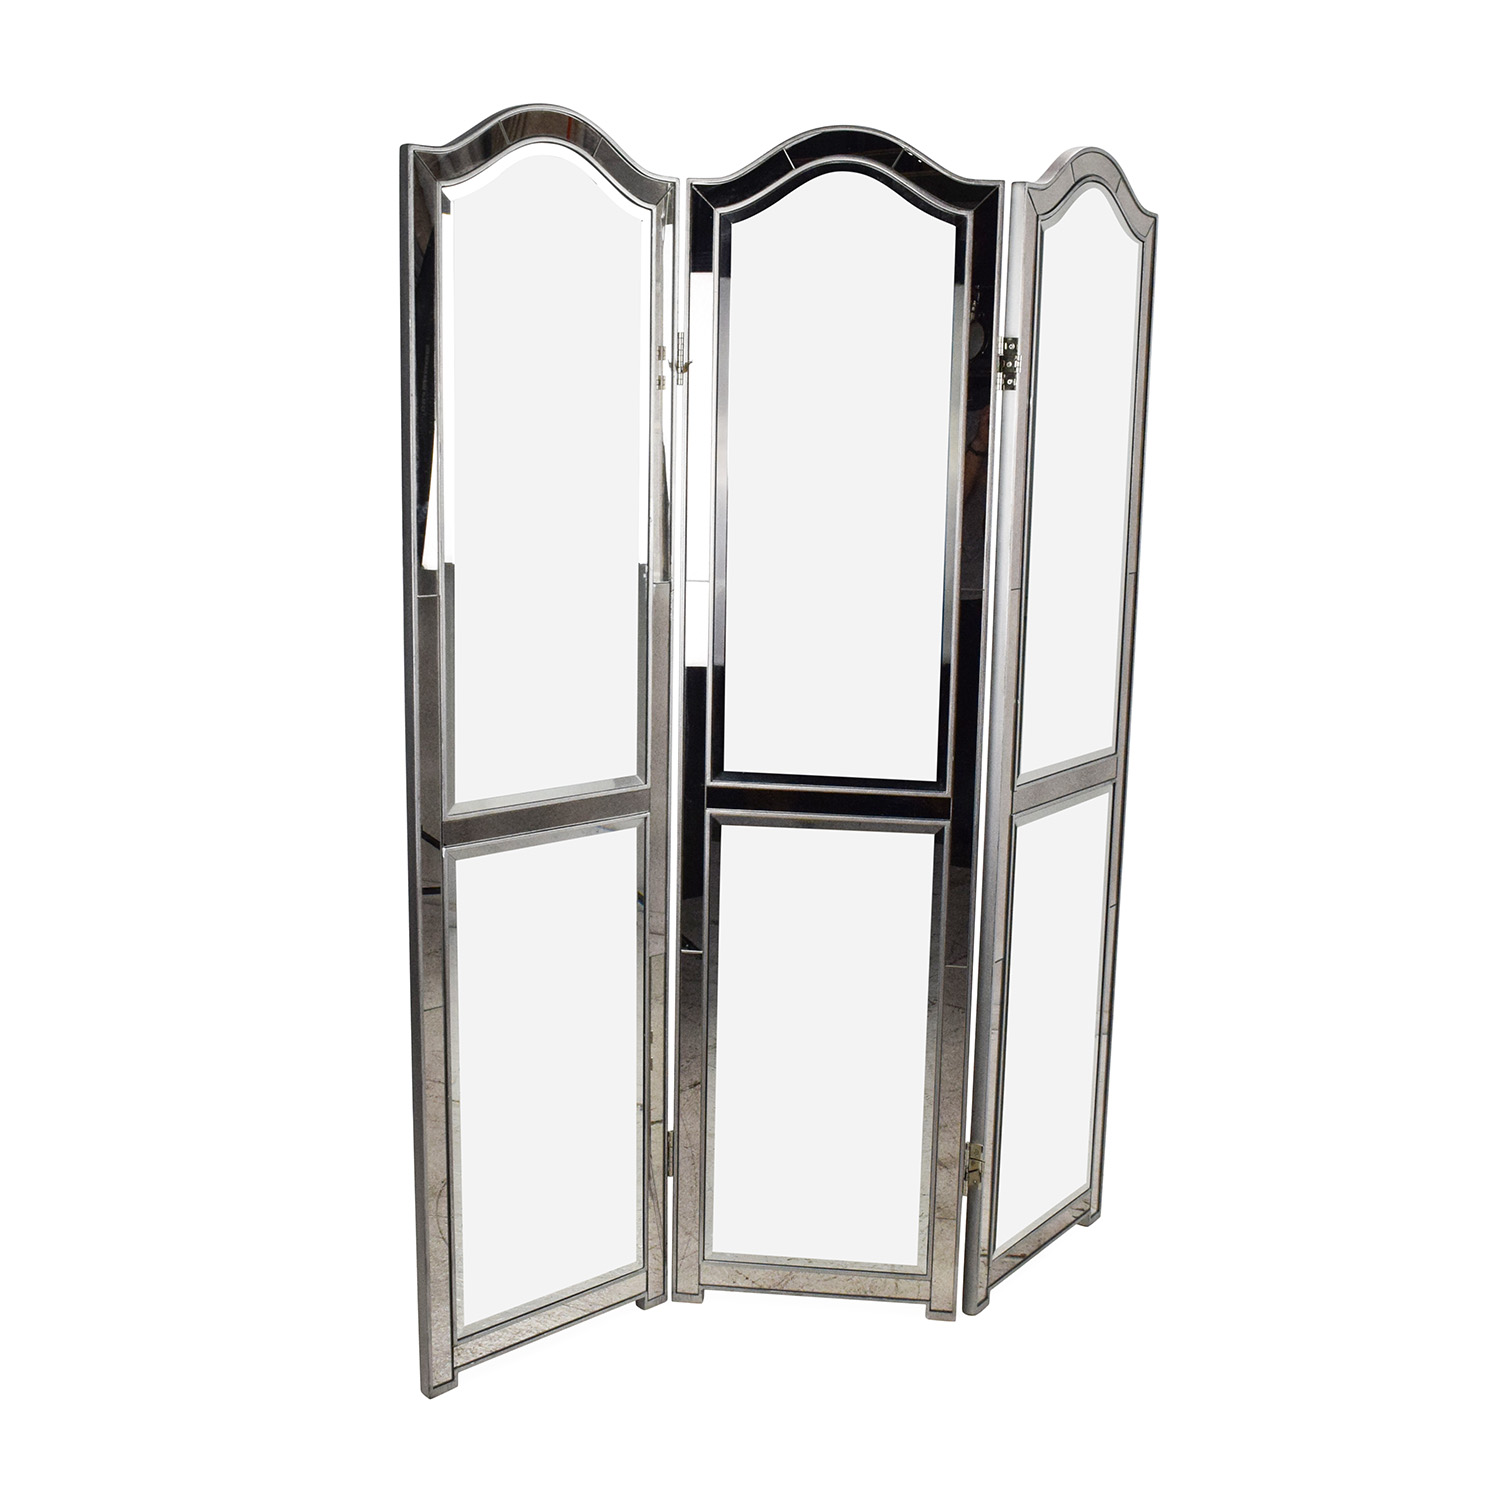 Pier 1 Imports Pier 1 Hayworth Mirrored Room Divider